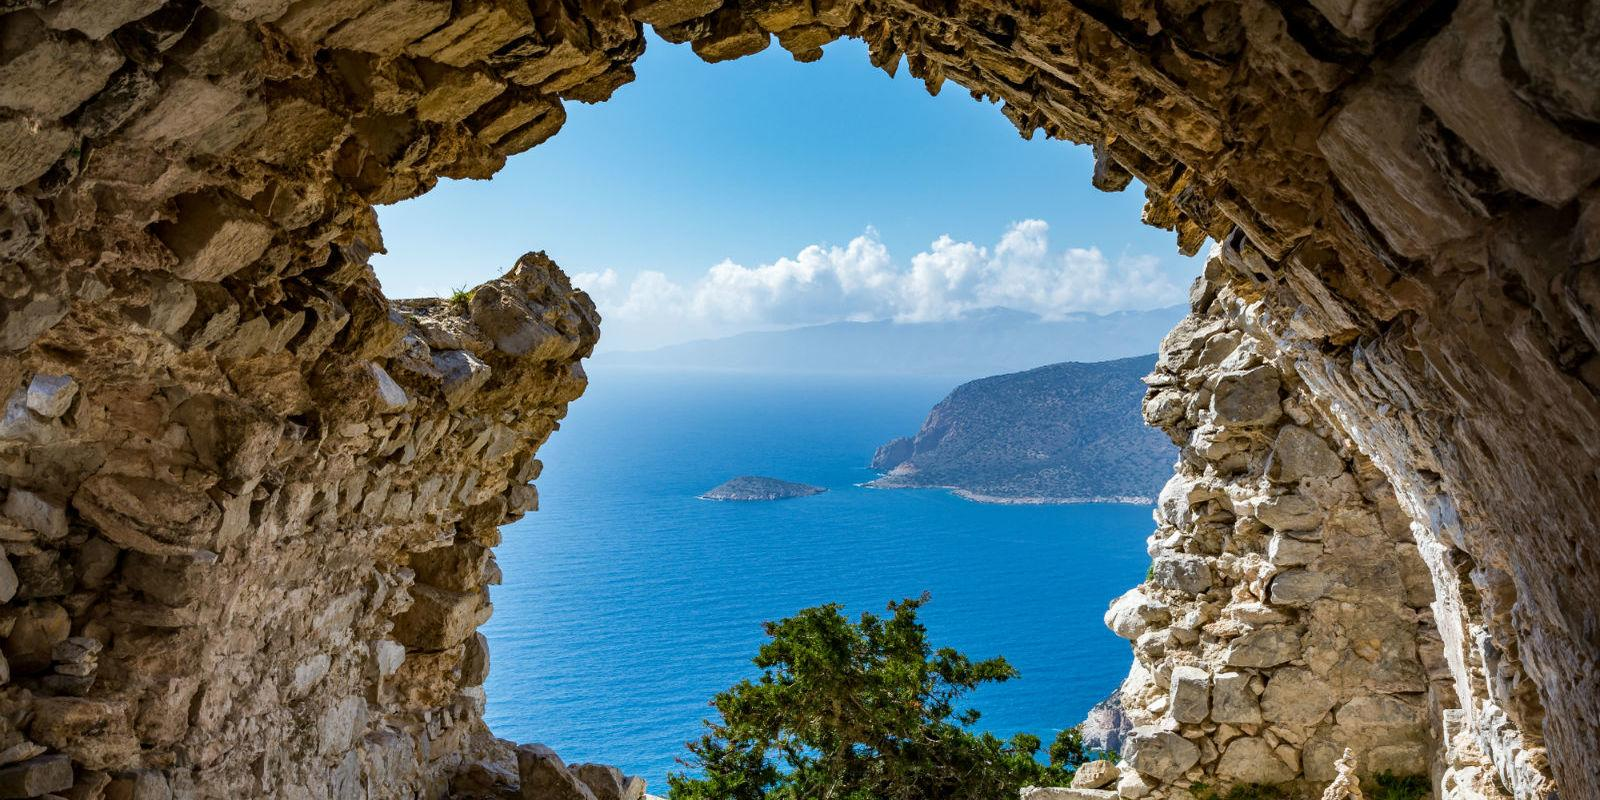 The Southern Dodecanese and Karpathos